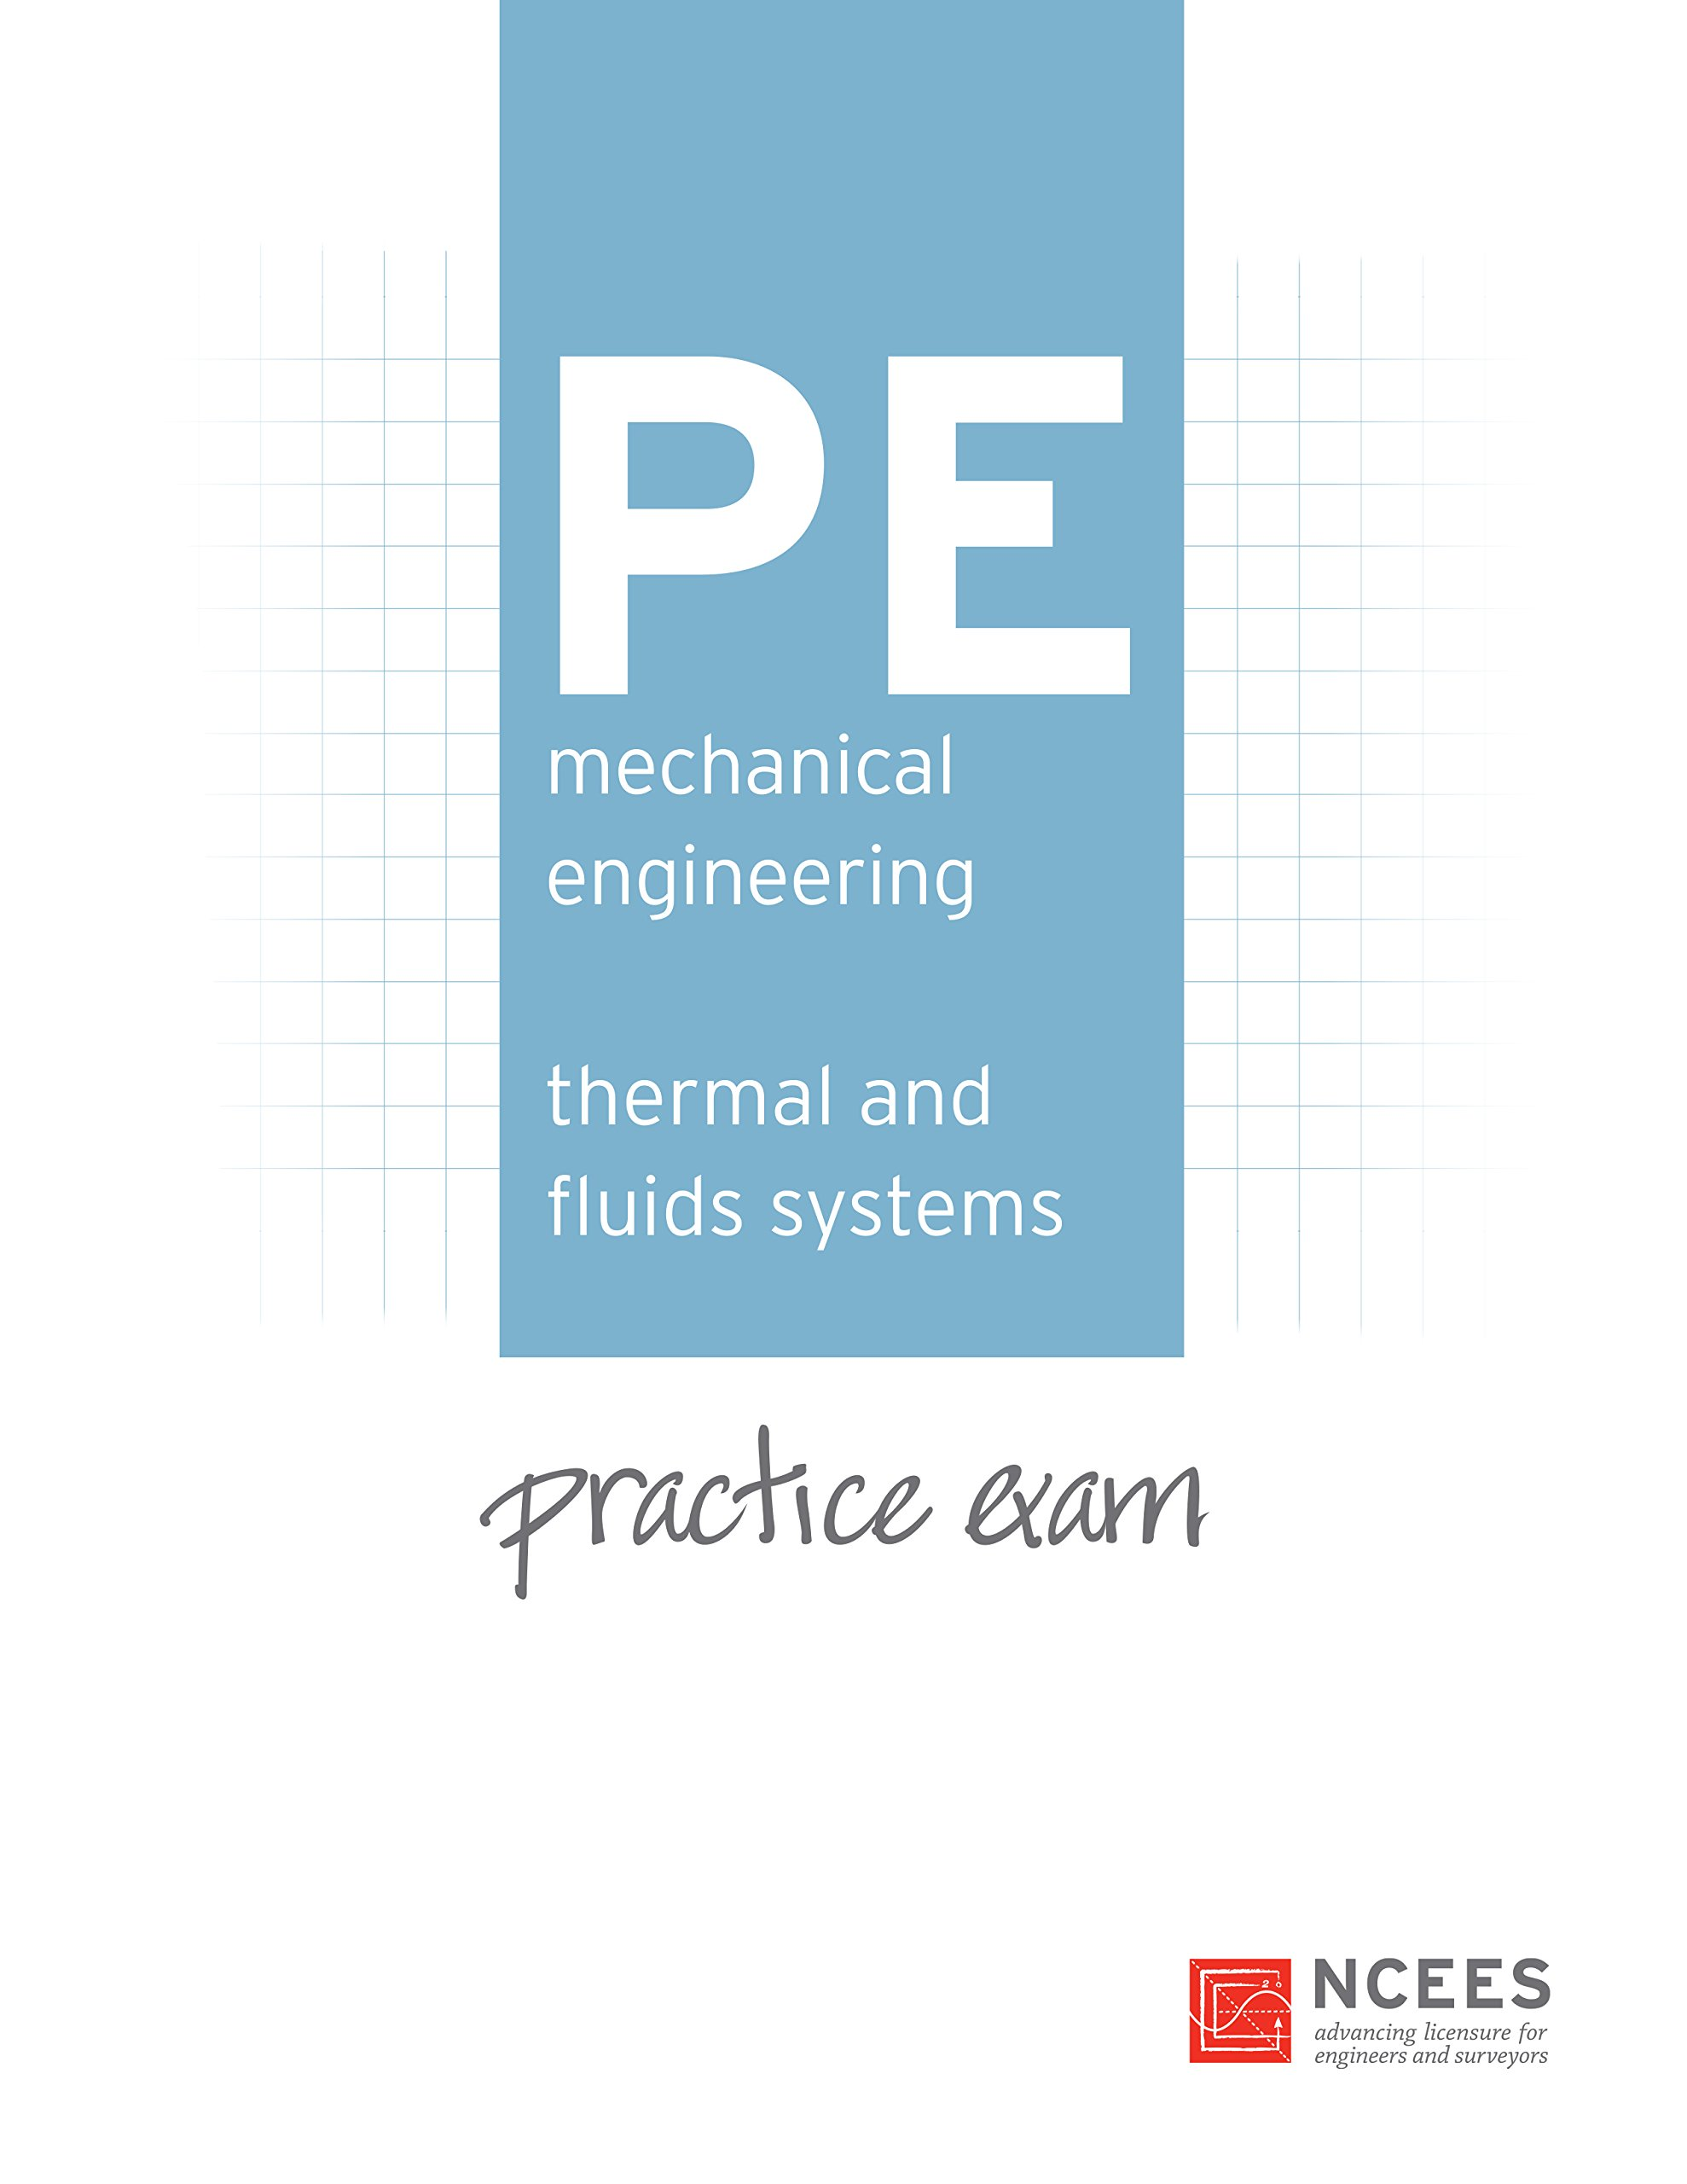 Pe mechanical engineering thermal and fluids systems practice exam pe mechanical engineering thermal and fluids systems practice exam ncees 9781932613780 amazon books fandeluxe Images